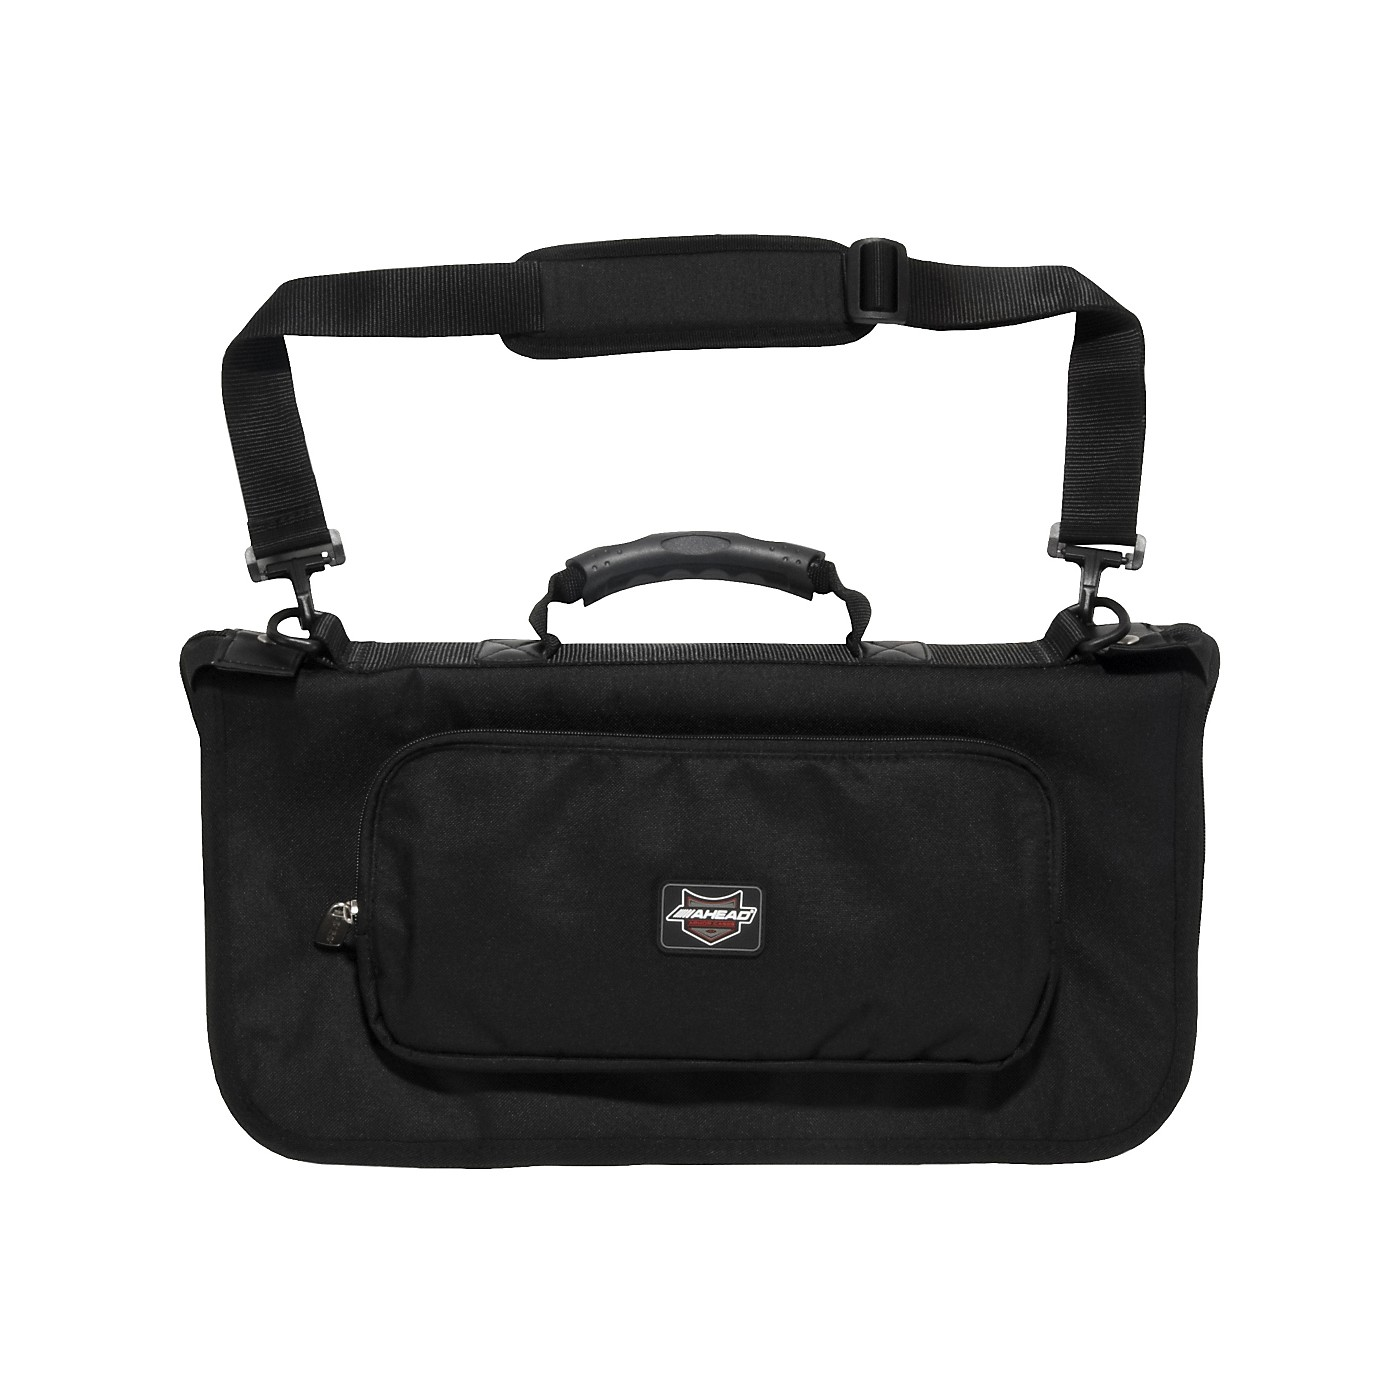 Ahead Armor Cases Deluxe Stick Case with Shoulder Strap thumbnail